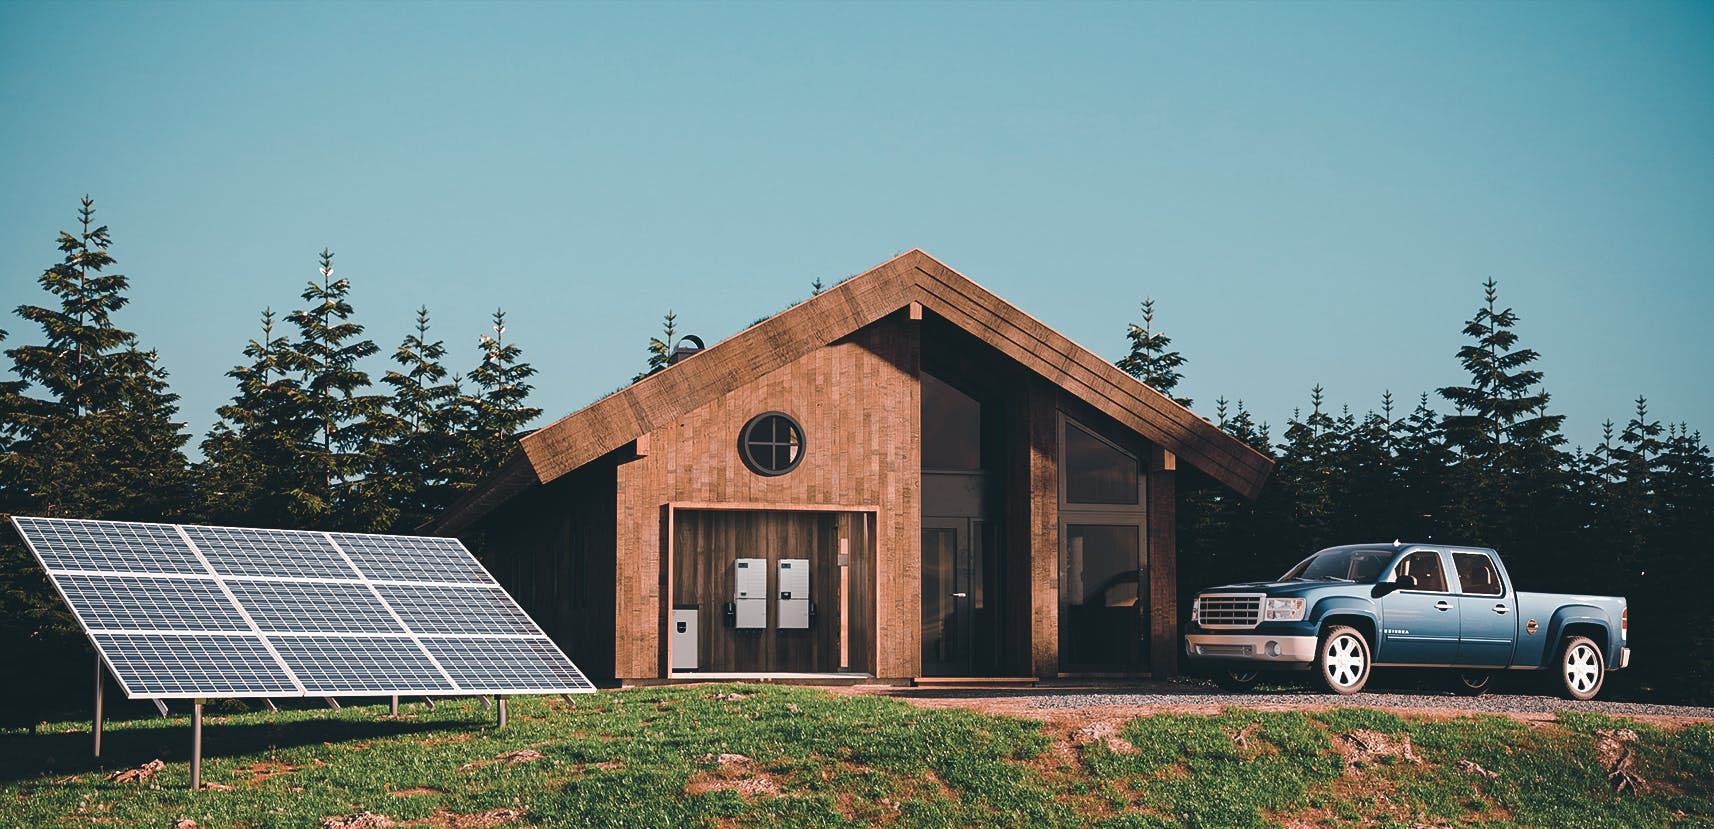 off grid solar home